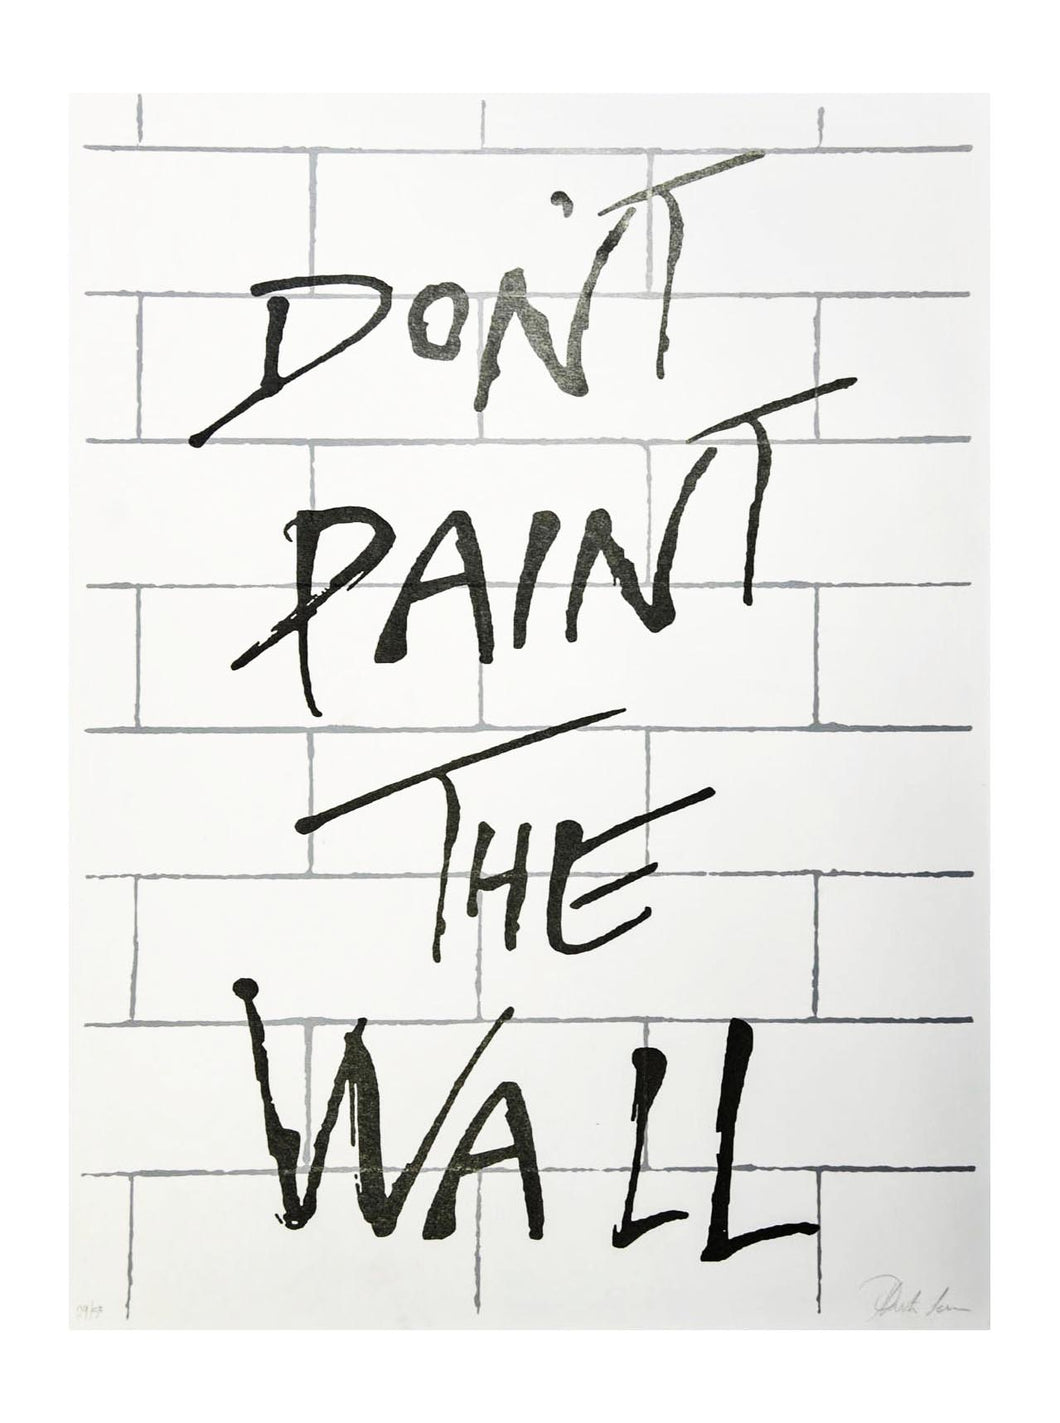 Art Canvas Pink Floyd inspired - The wall